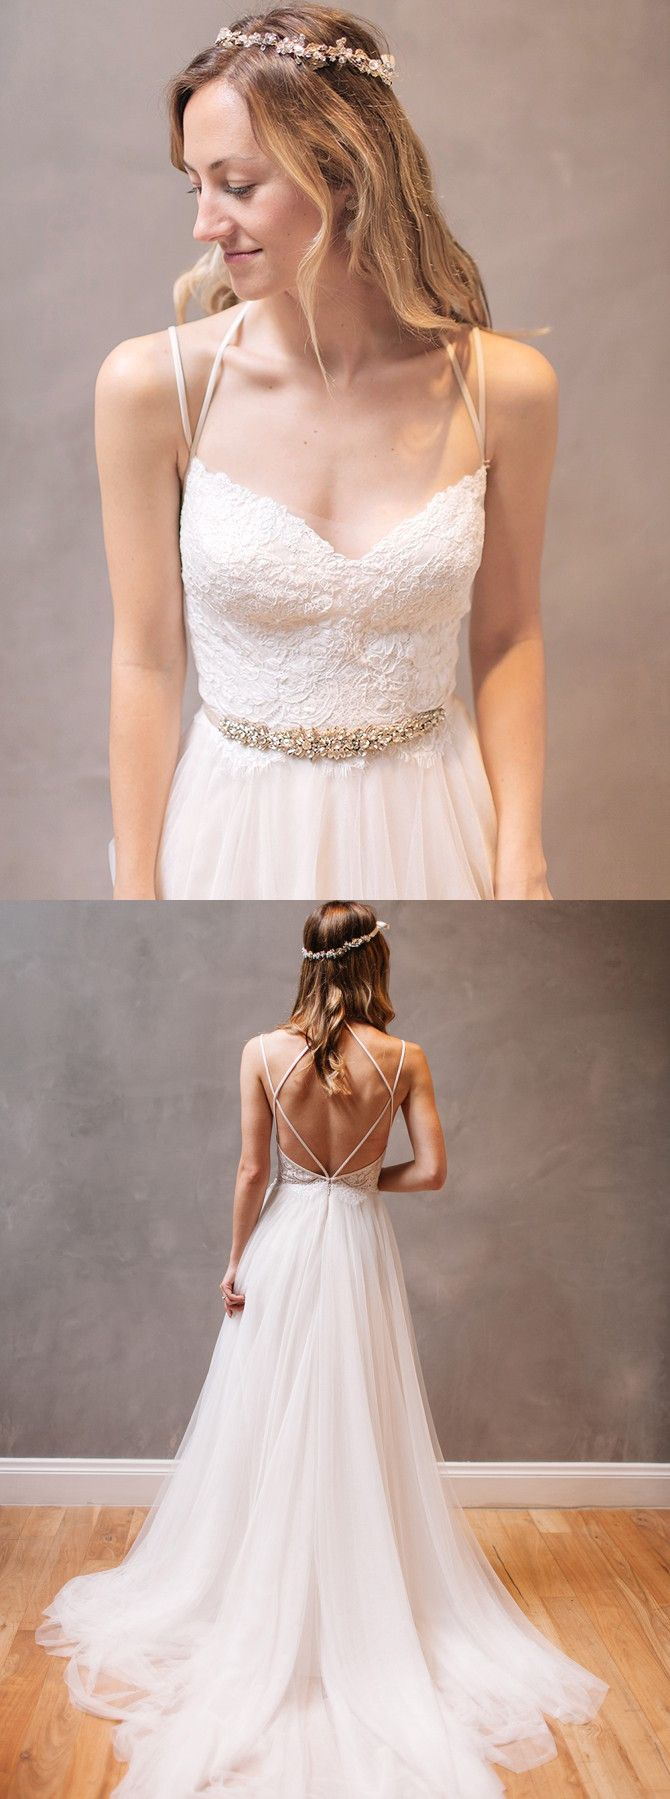 2017 wedding dresses,lace wedding dresses,backless wedding dresses,simple wedding dresses @simpledress2480